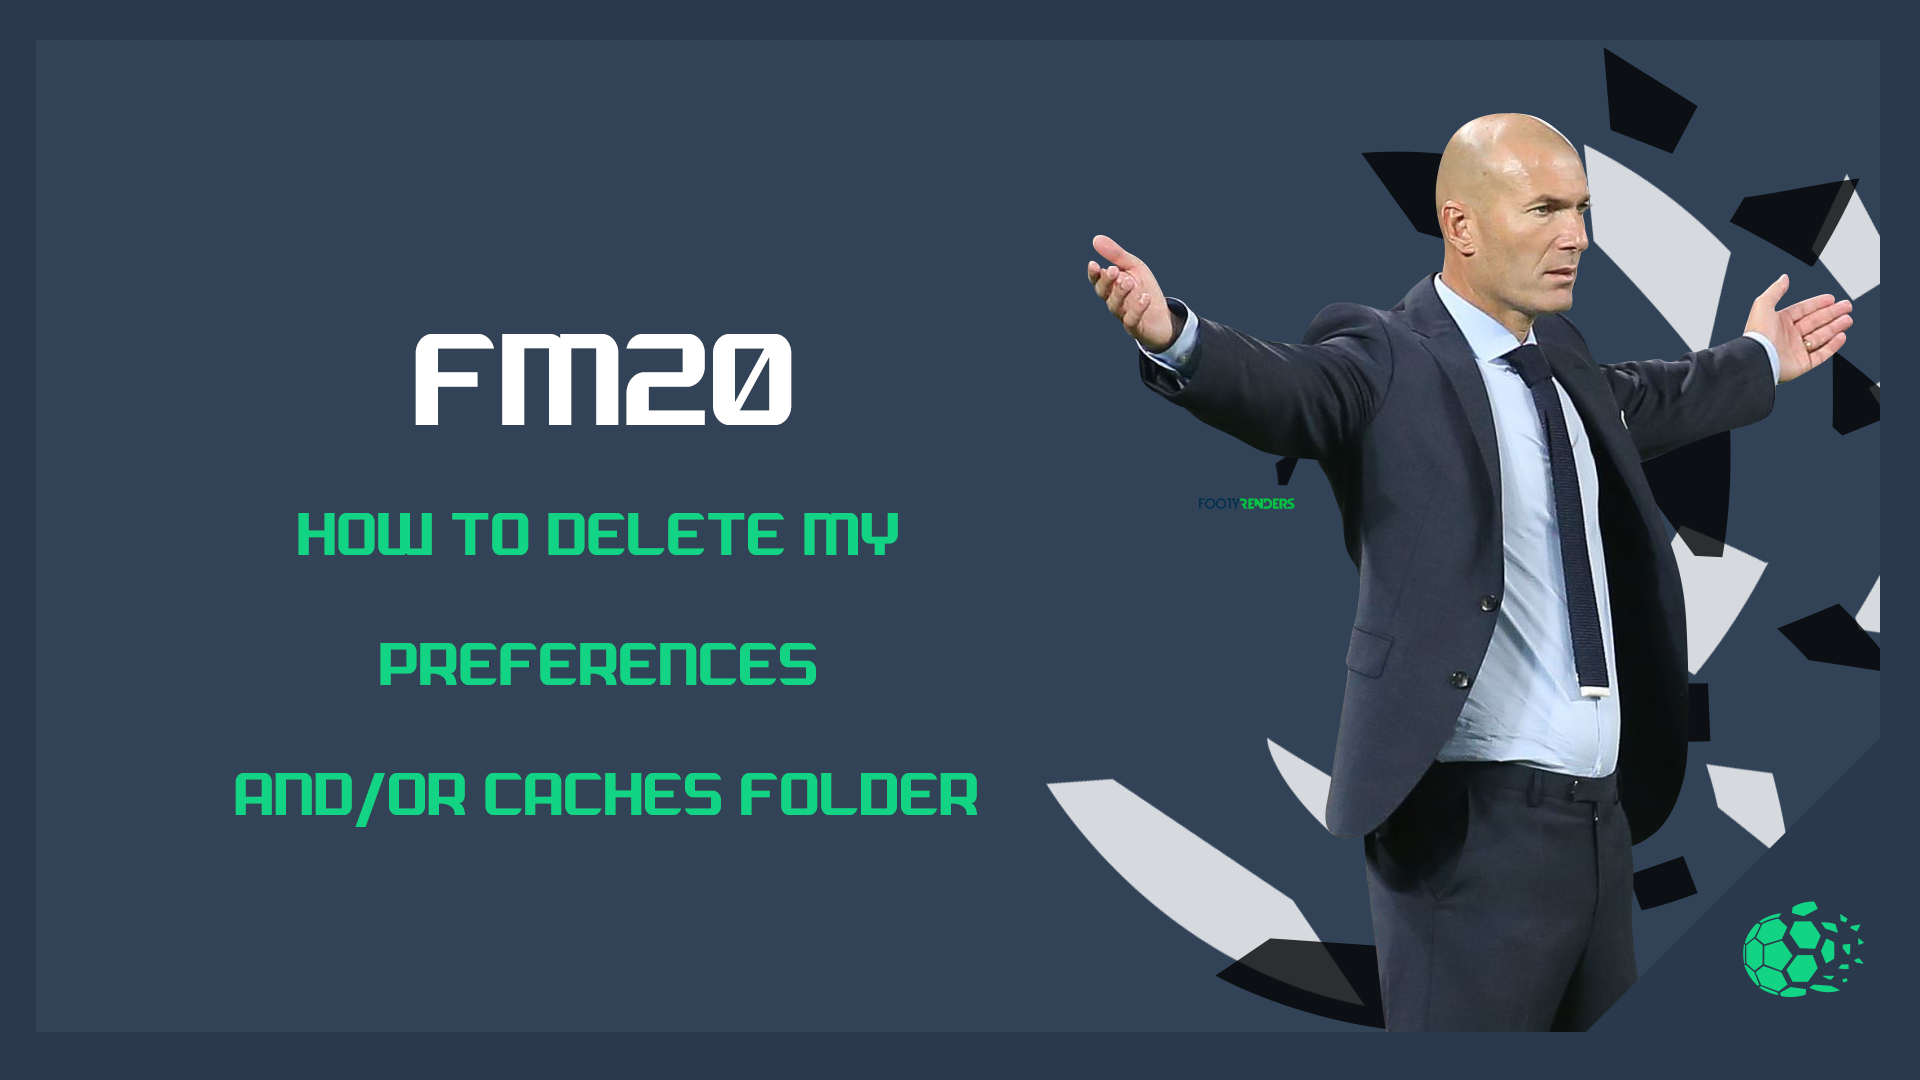 """FM20 FM20: How to Delete my Preferences and/or Caches Folder"" feature image"